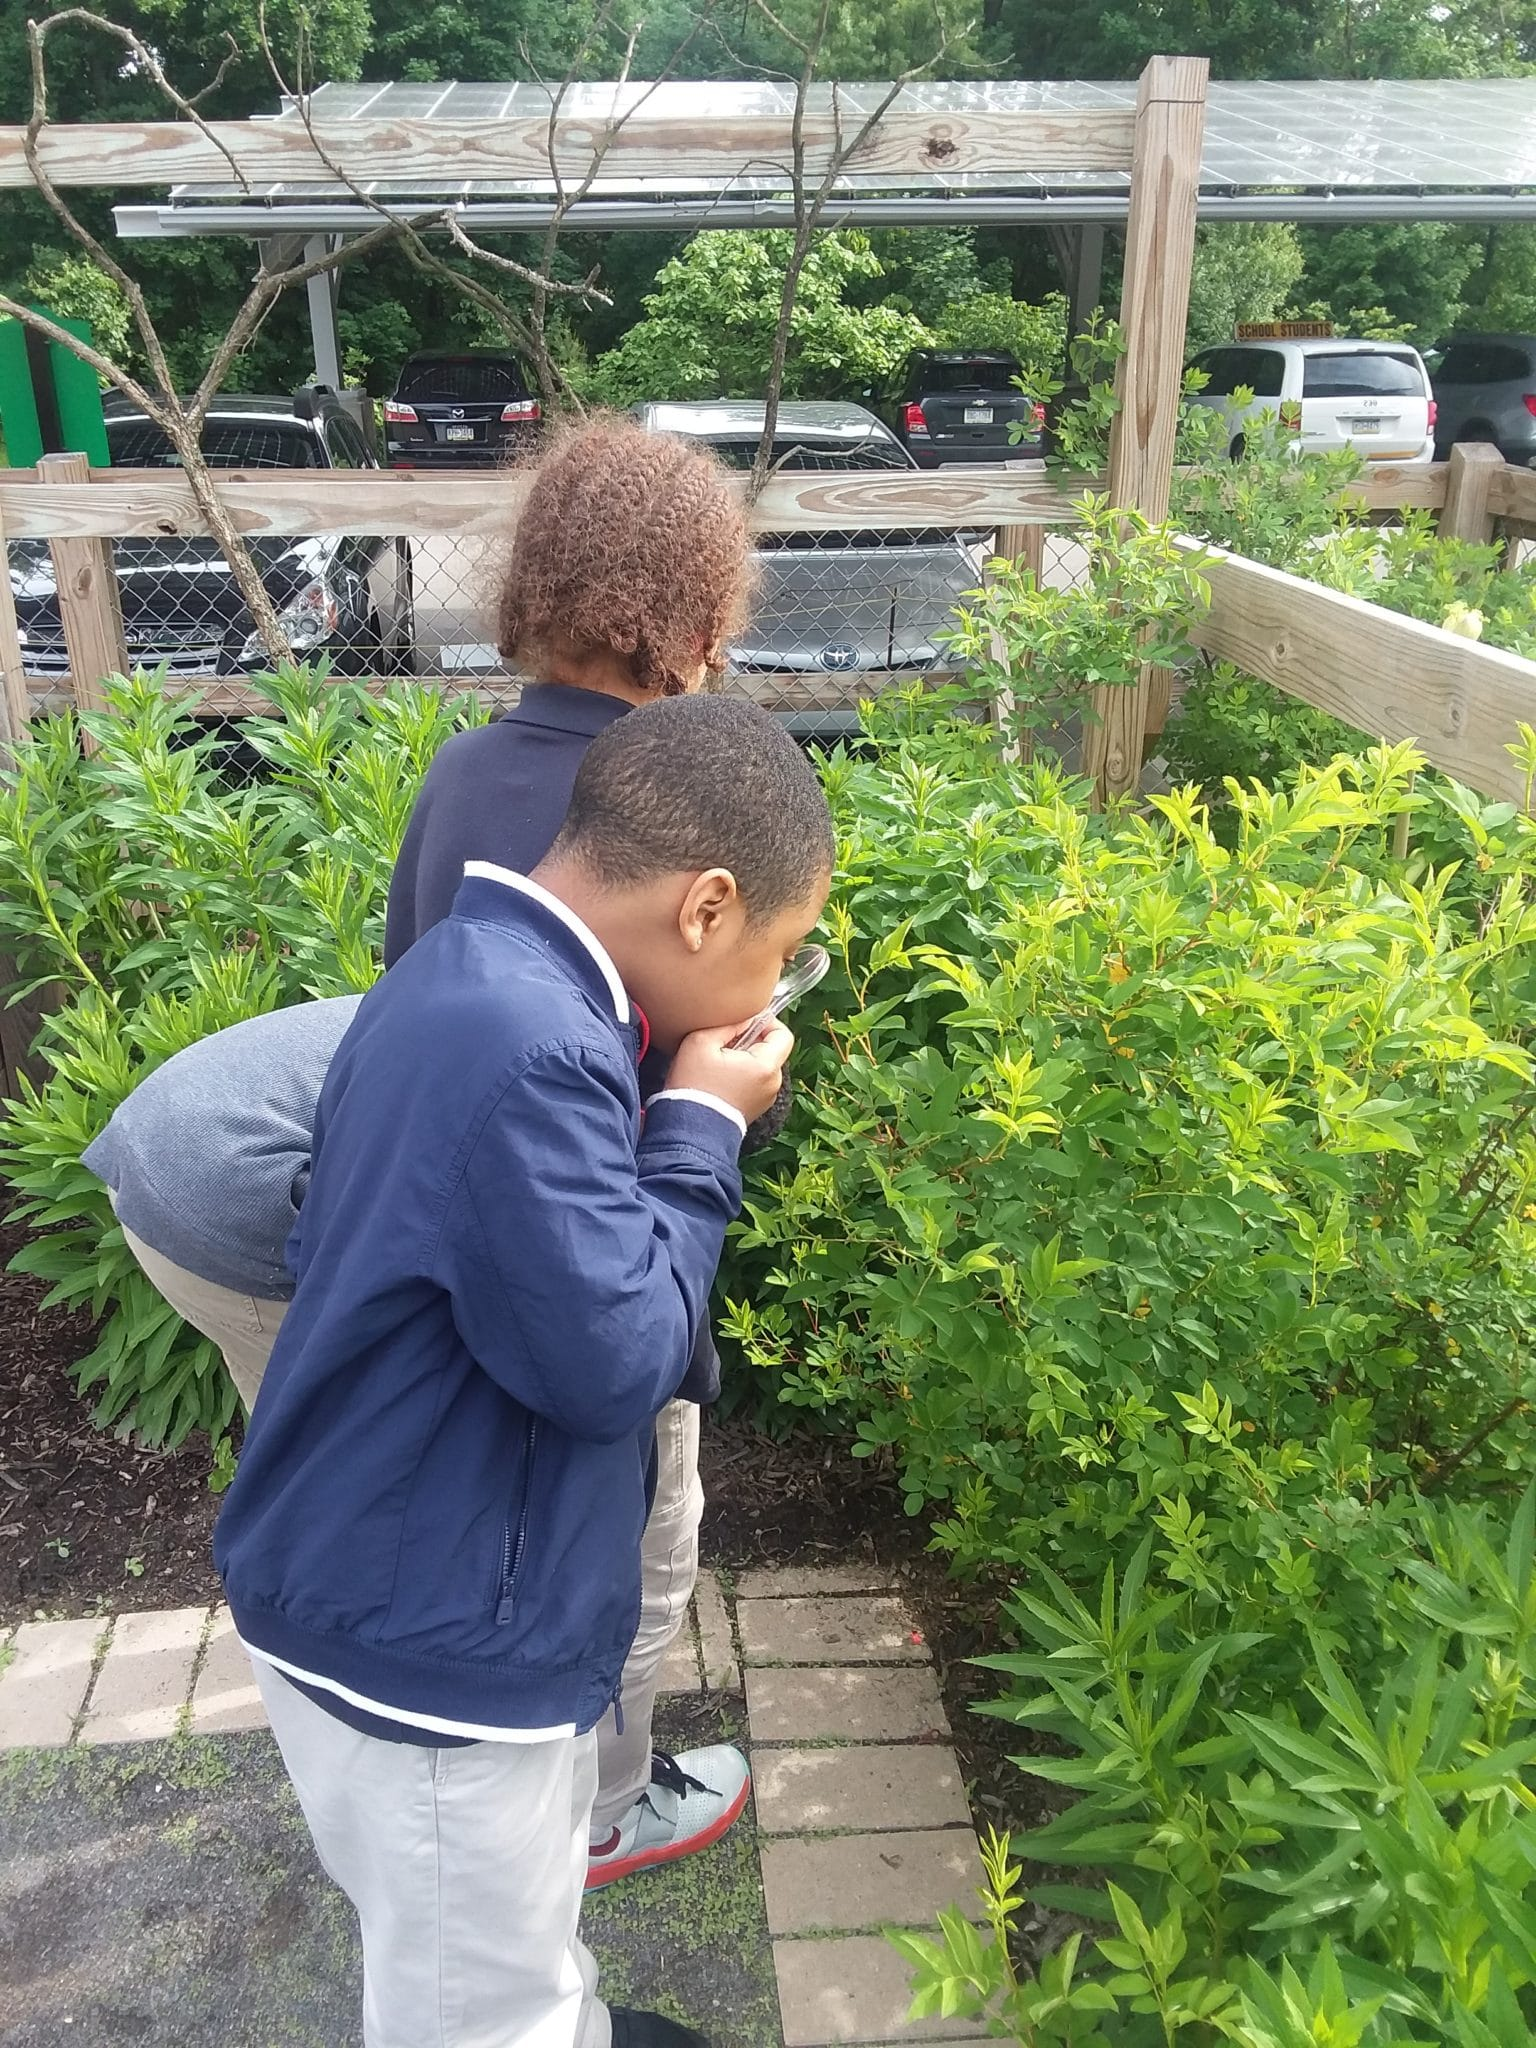 A child with a magnifying glass looking at plants